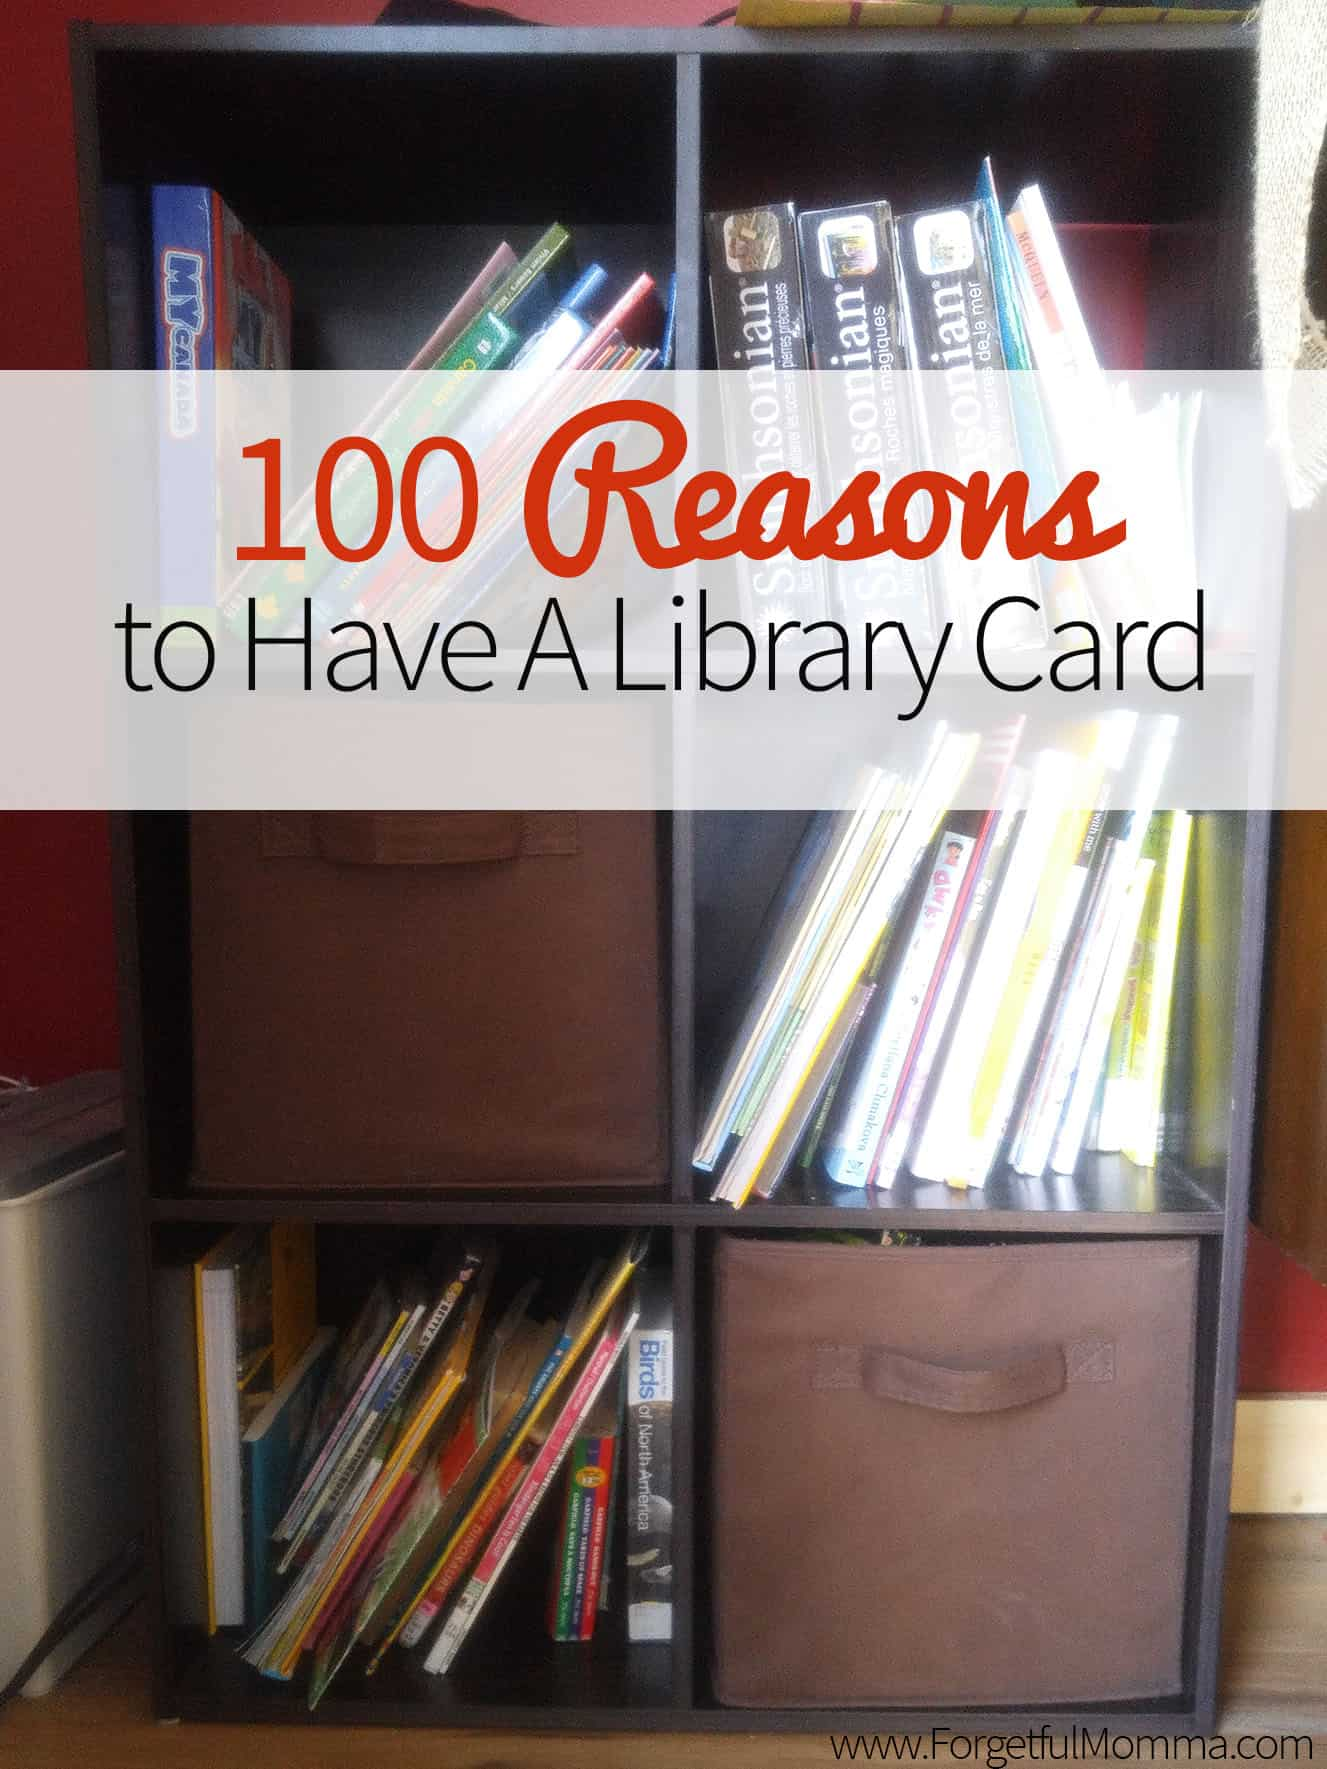 100 reasons to have a library card